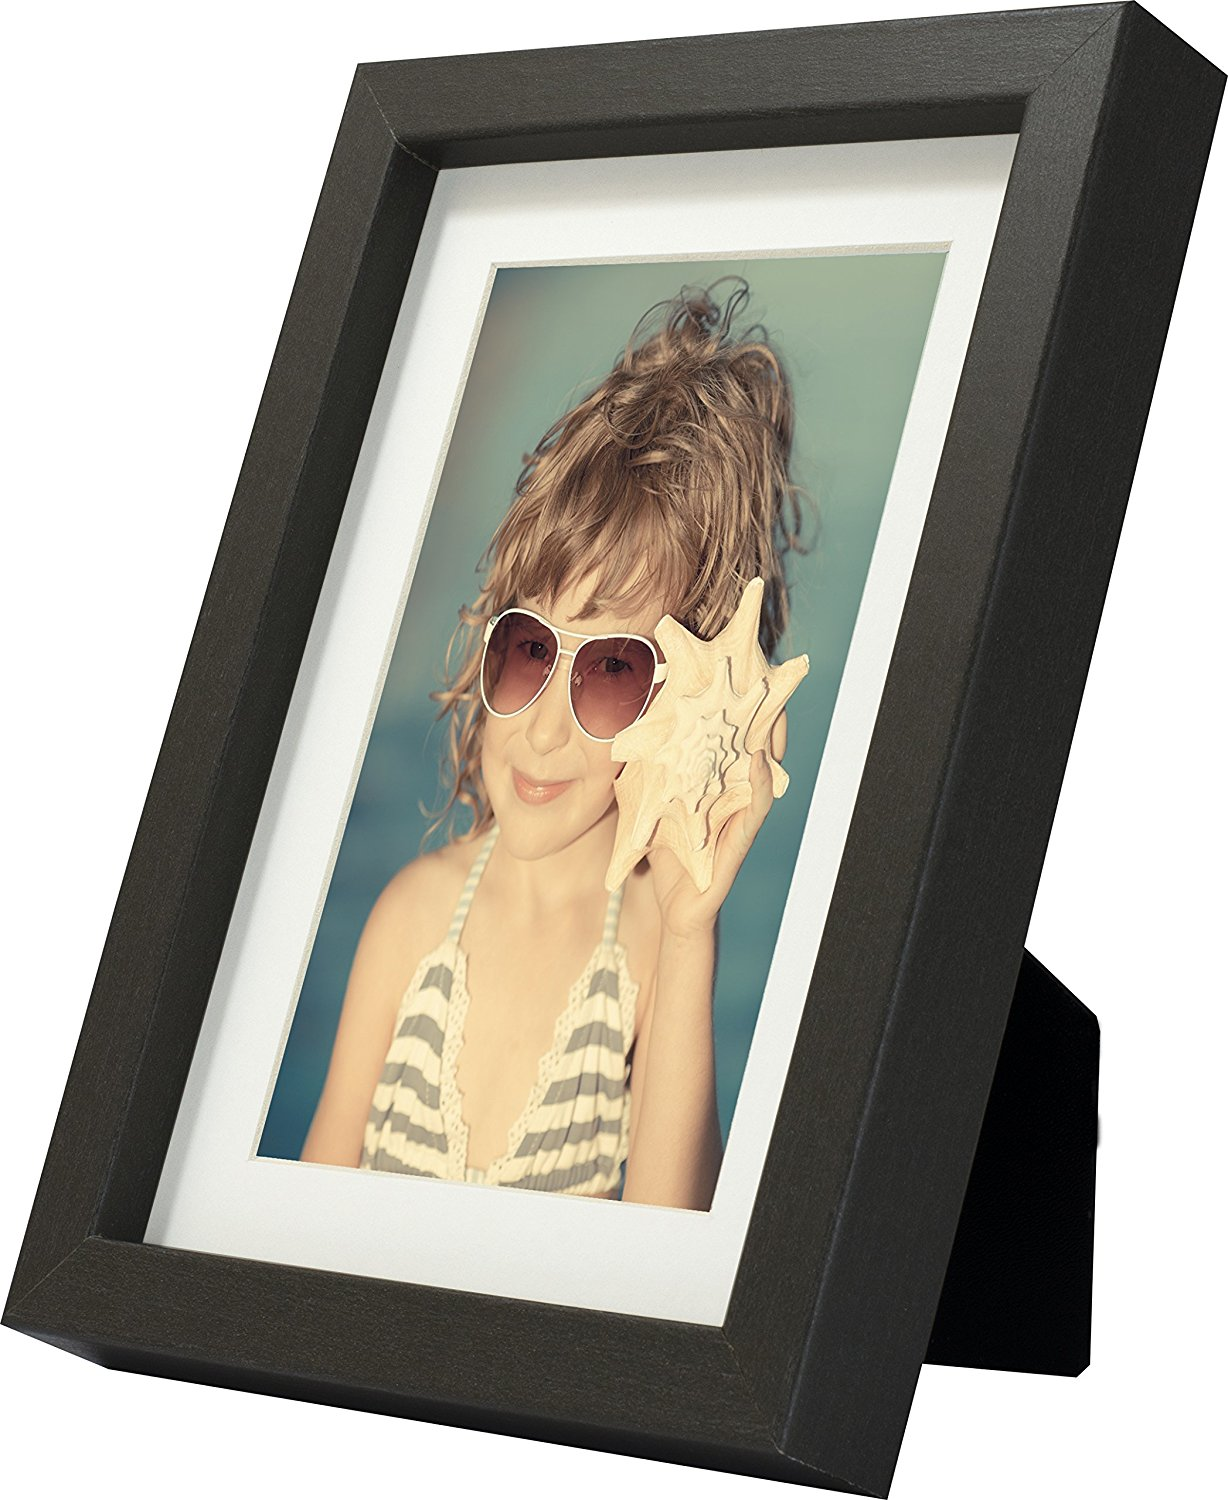 5 x 7-Inch Picture Photo Frame with mount for 4 x 6-Inch photo, GREY